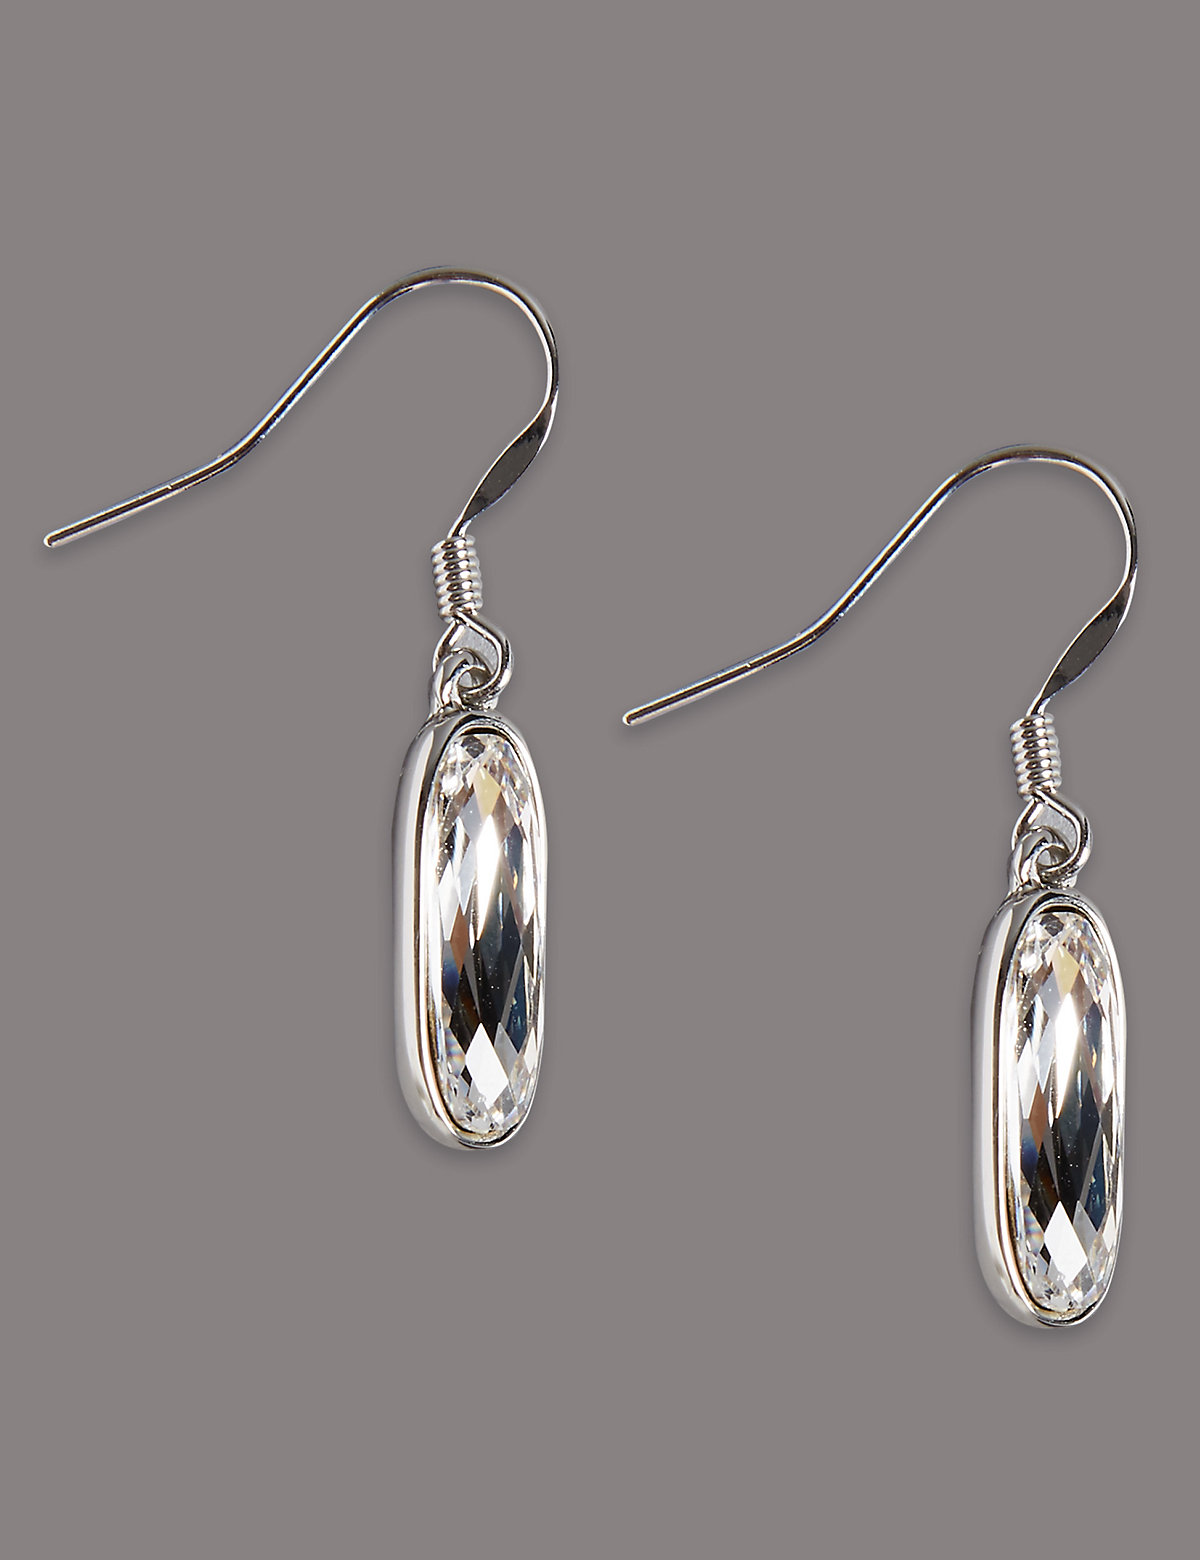 Autograph Clean Drop Earrings MADE WITH SWAROVSKI ELEMENTS